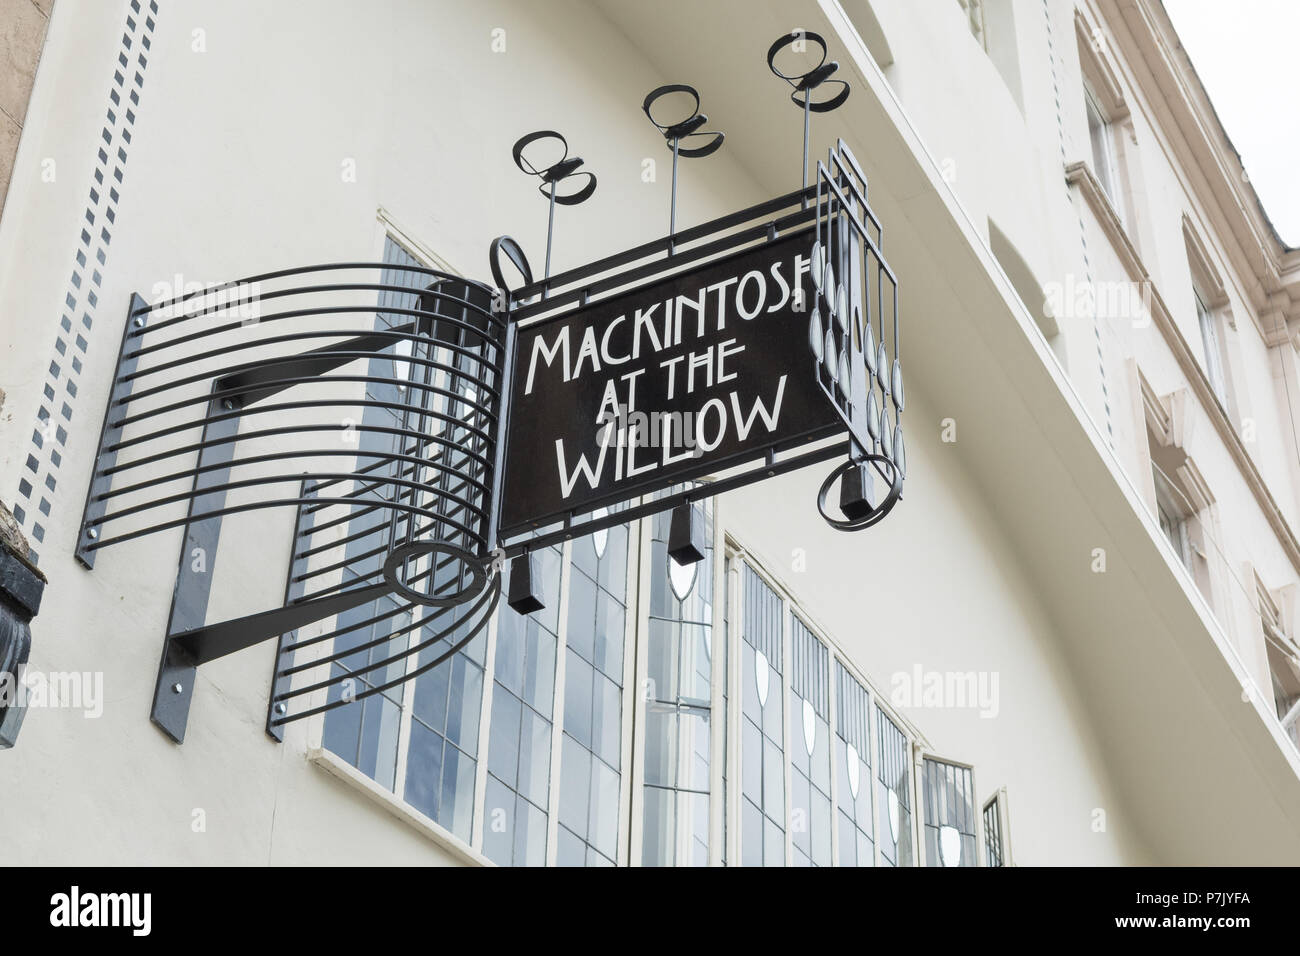 Mackintosh at the Willow, tea rooms 217 Sauchiehall Street, Glasgow, Scotland, UK - Stock Image